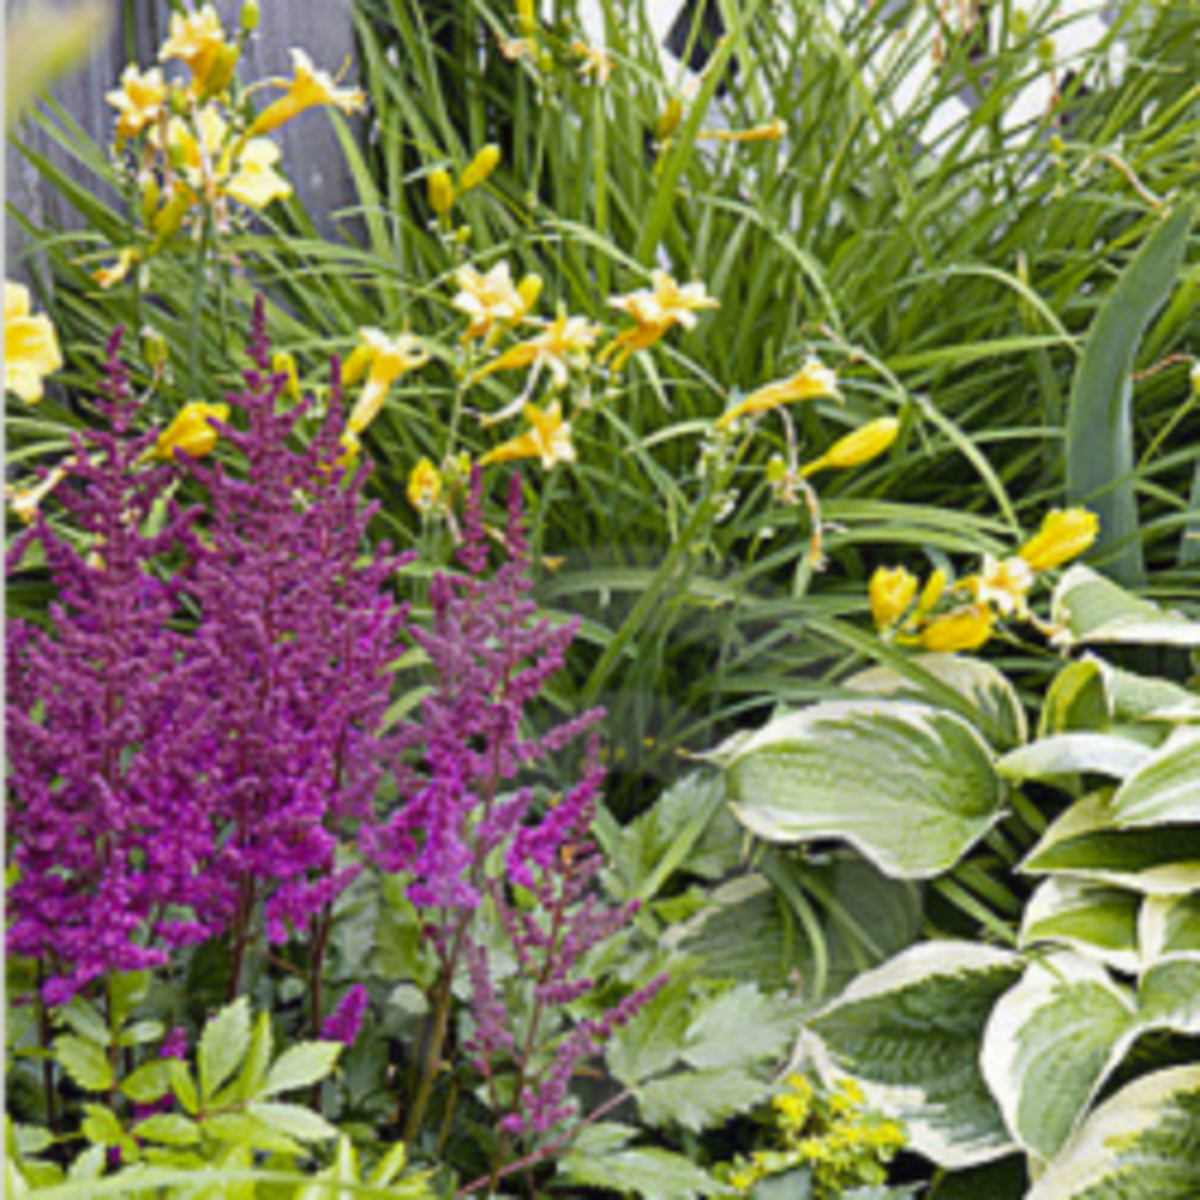 Chazz on hubpages for Easy maintenance perennials